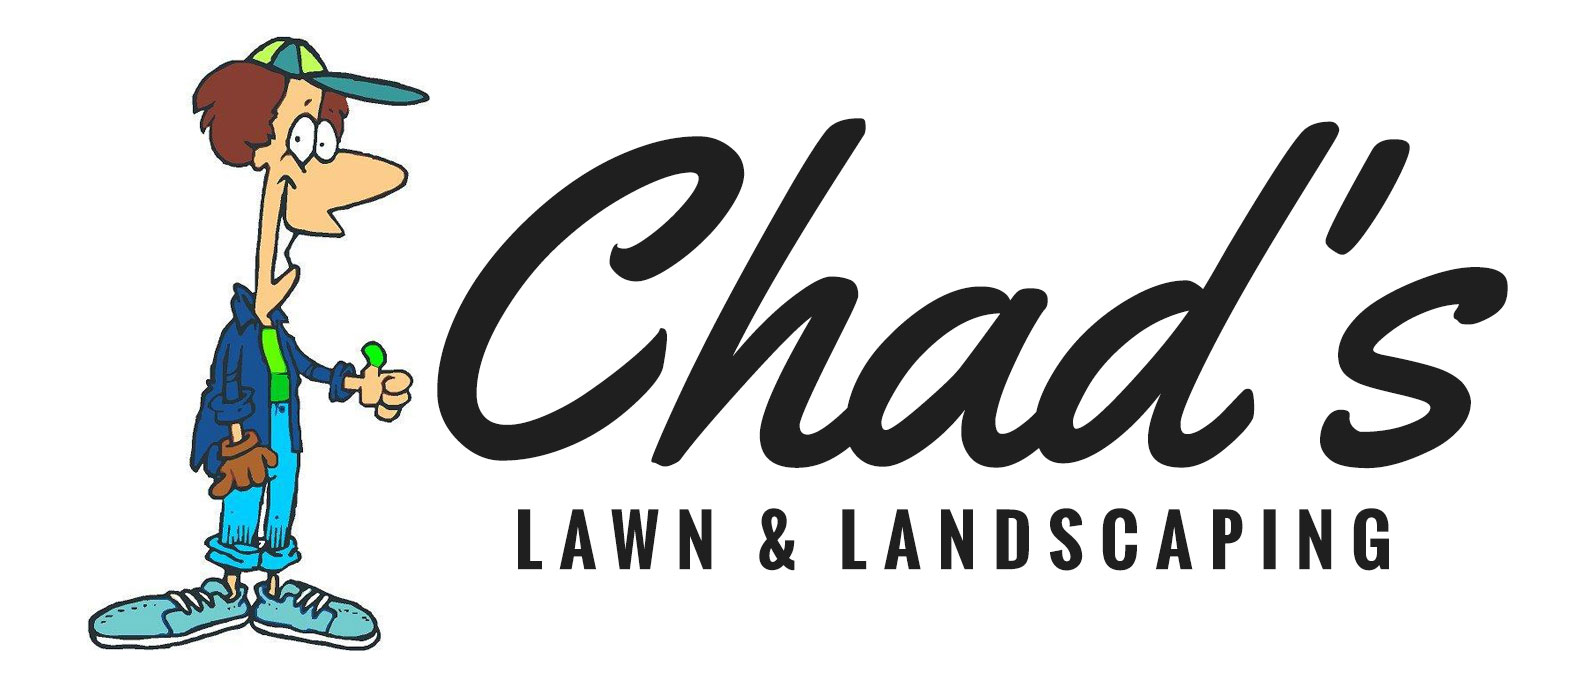 Chad's Lawn & Landscaping